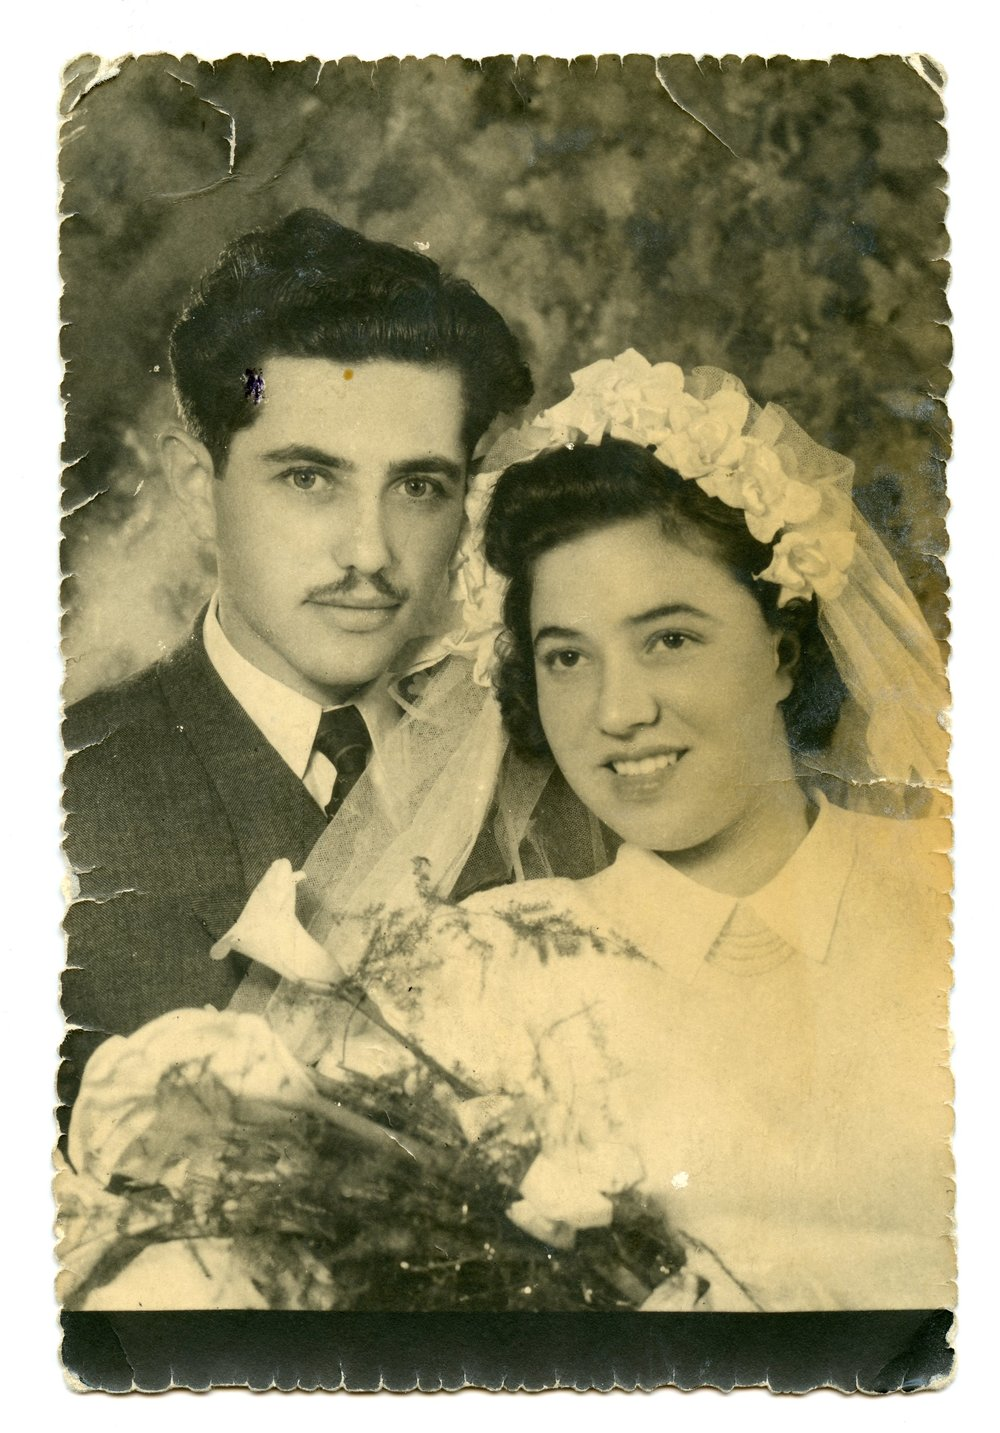 Copy of February 19, 1952 Aron (21) and Cipora (18) married in Beit Shan, Israel